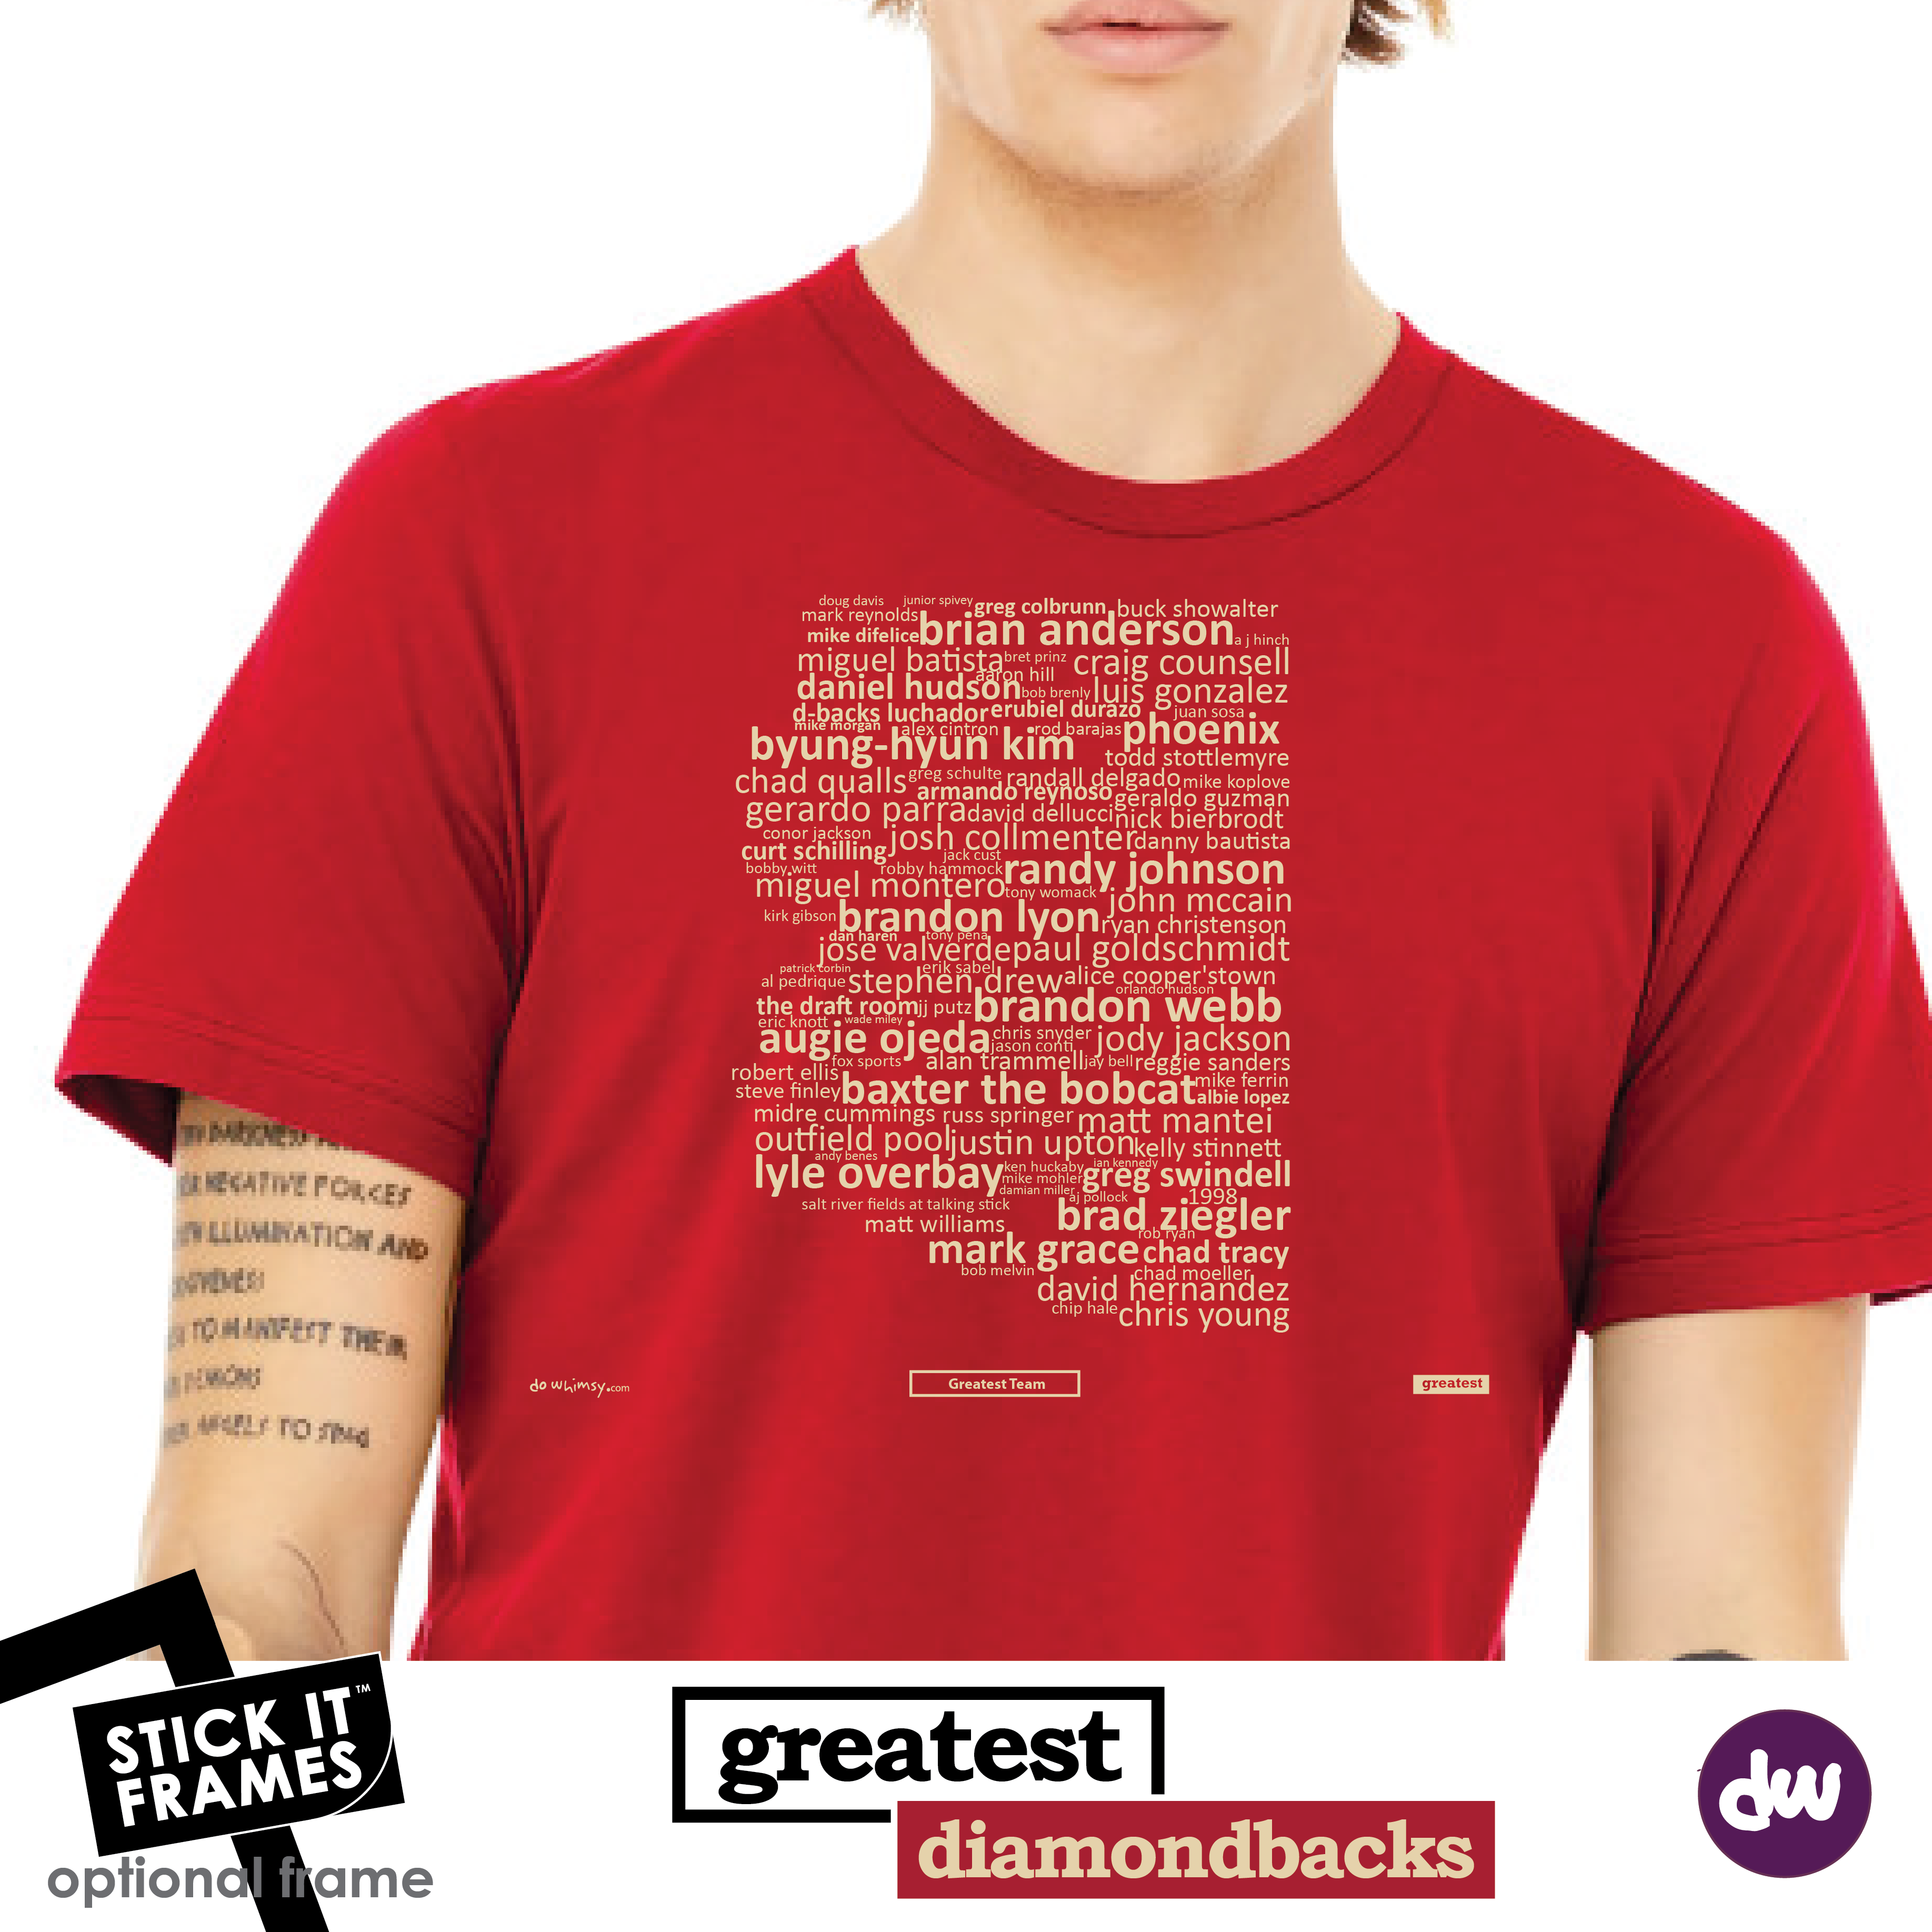 Greatest Arizona (Cardinals) - All Products (Shirt, Art, Frames (R))